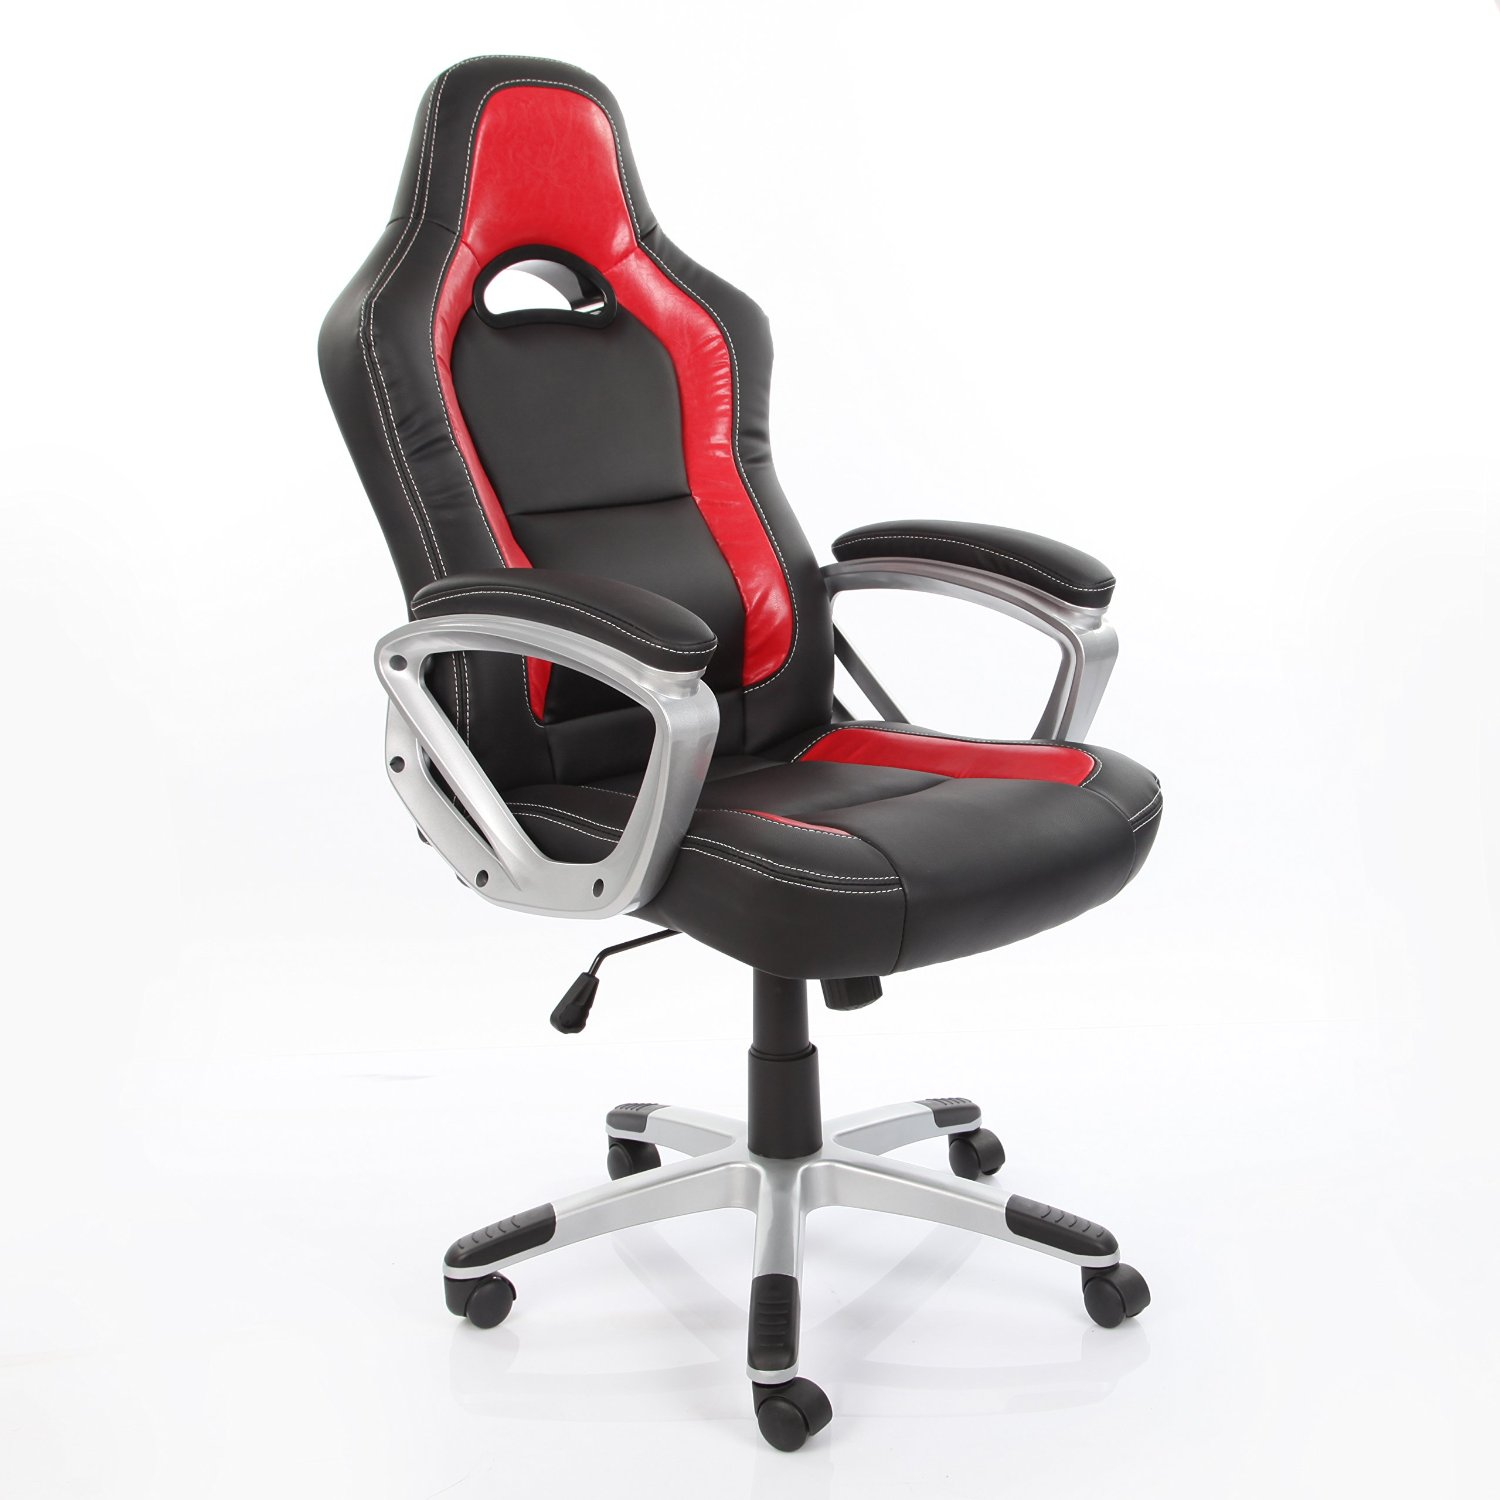 A Guide To Choosing The Best Office Chair Under 200 Dollars